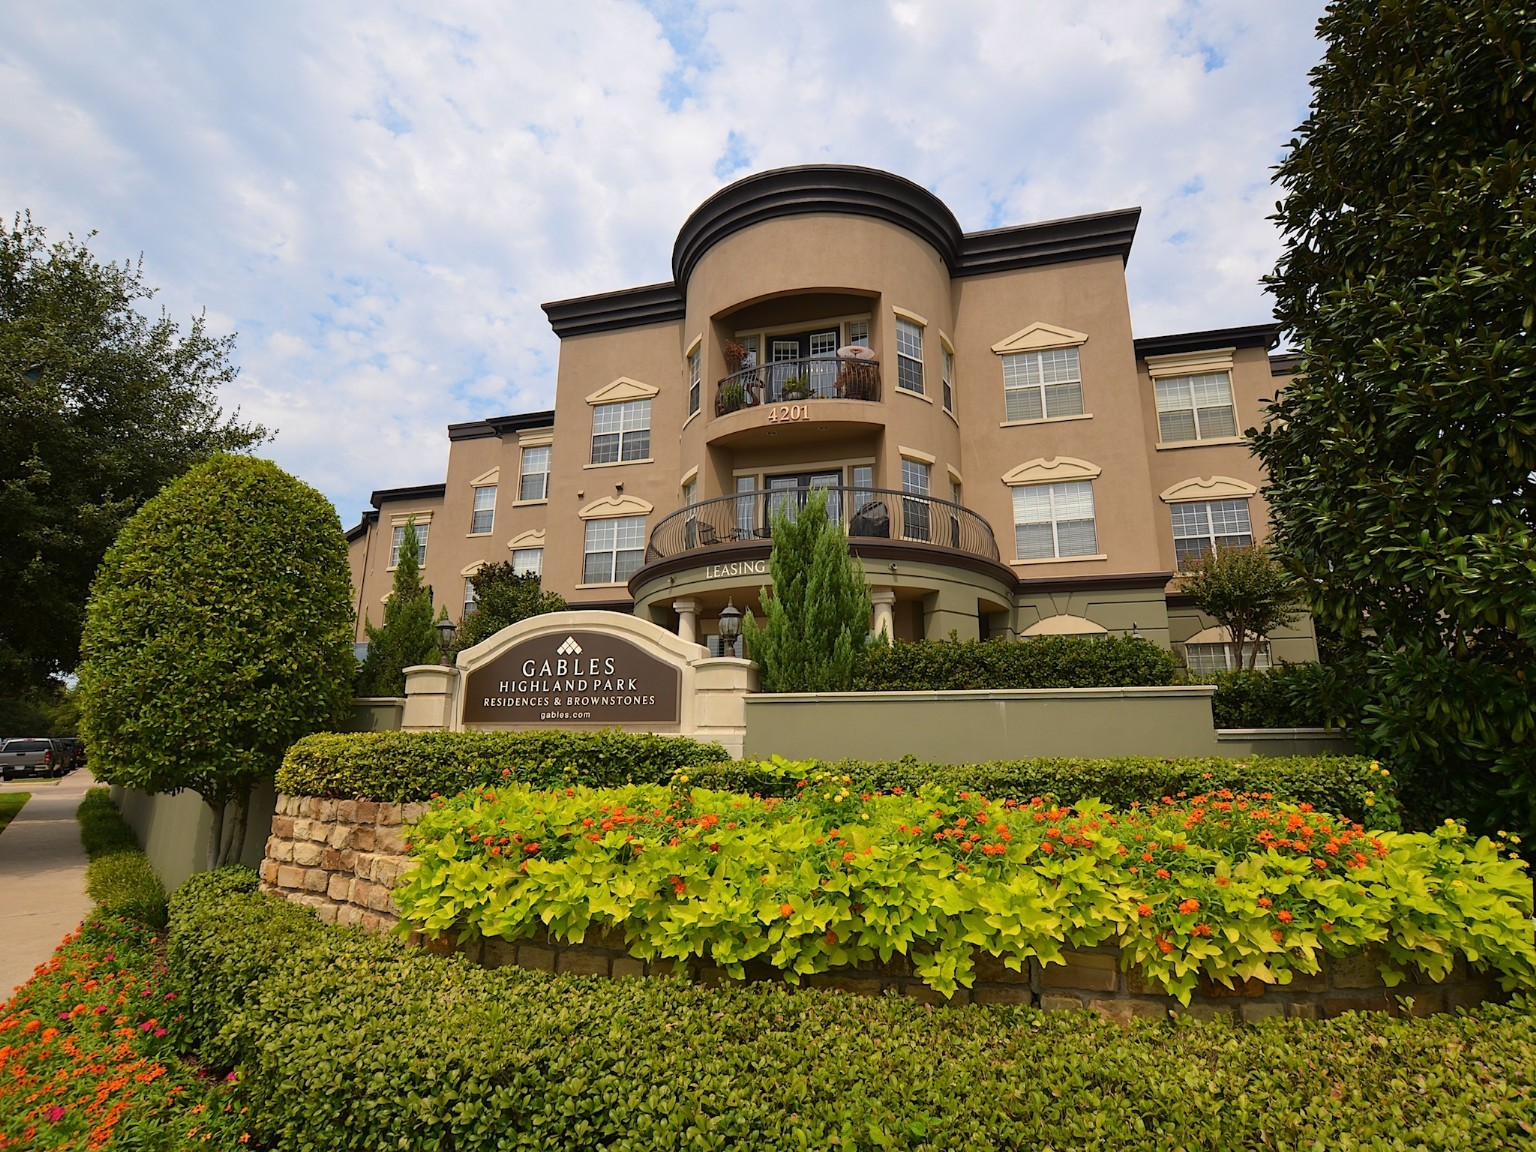 Gables Highland Park Residences - Dallas apartments for rent ...